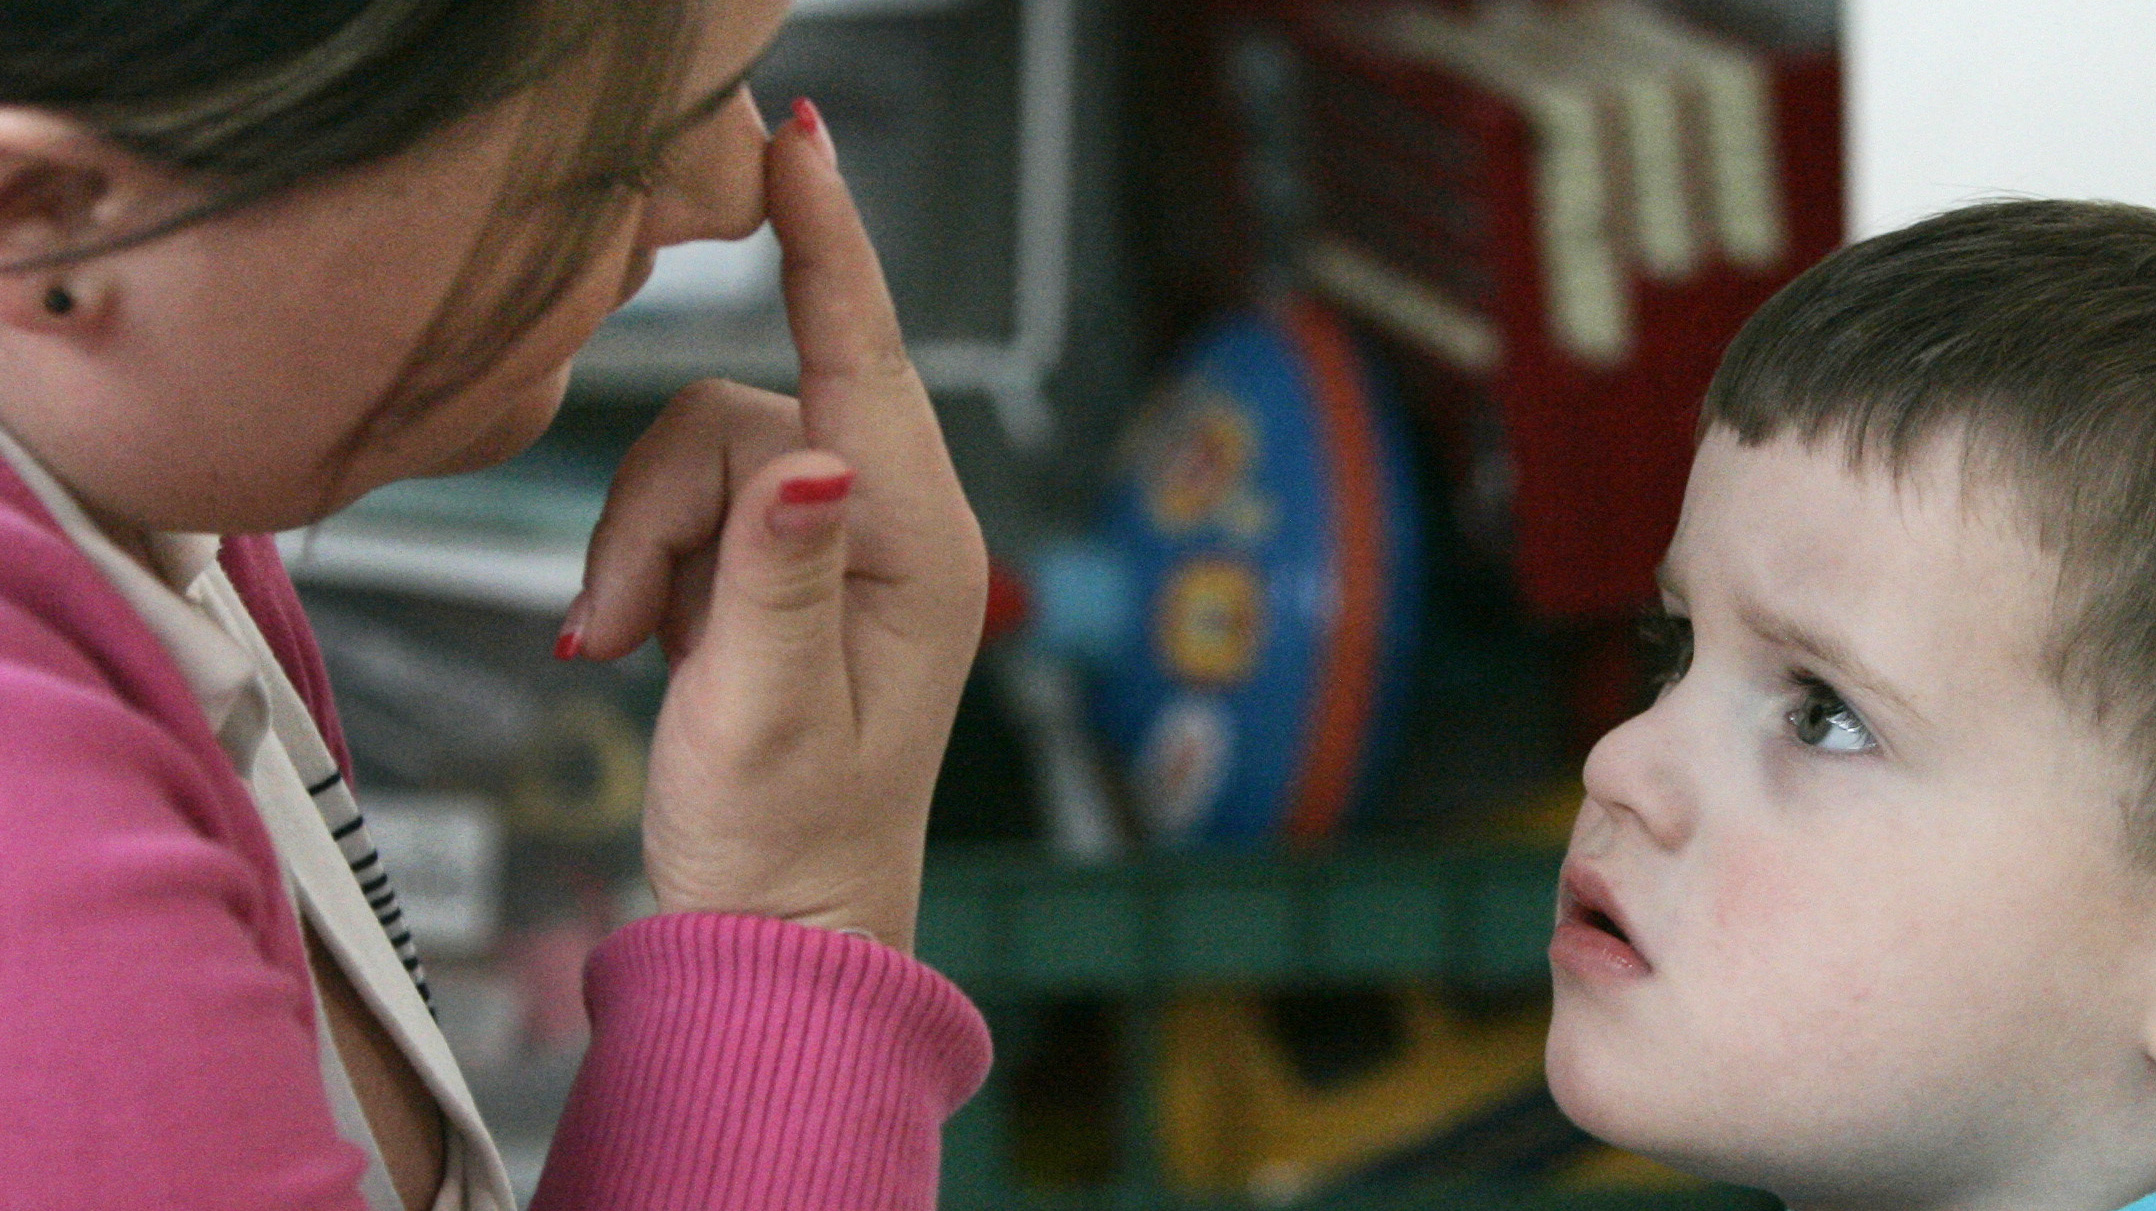 Kids With Autism May Find Human Voice Unpleasant